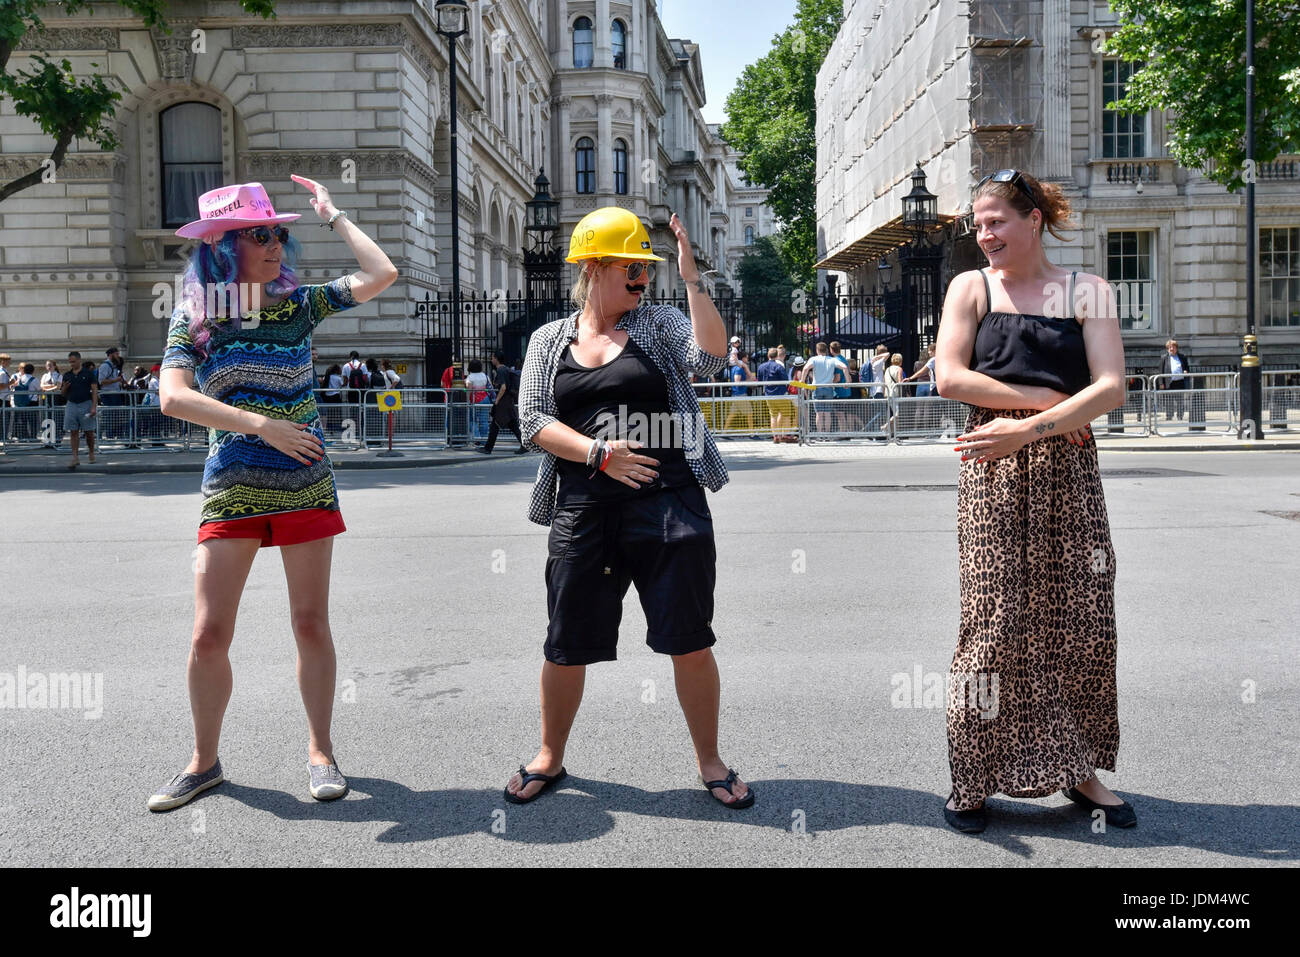 """London, UK. 21st June, 2017. Anti-Tory protesters stage a """"dance off"""" outside Downing Street following the Queen's Stock Photo"""